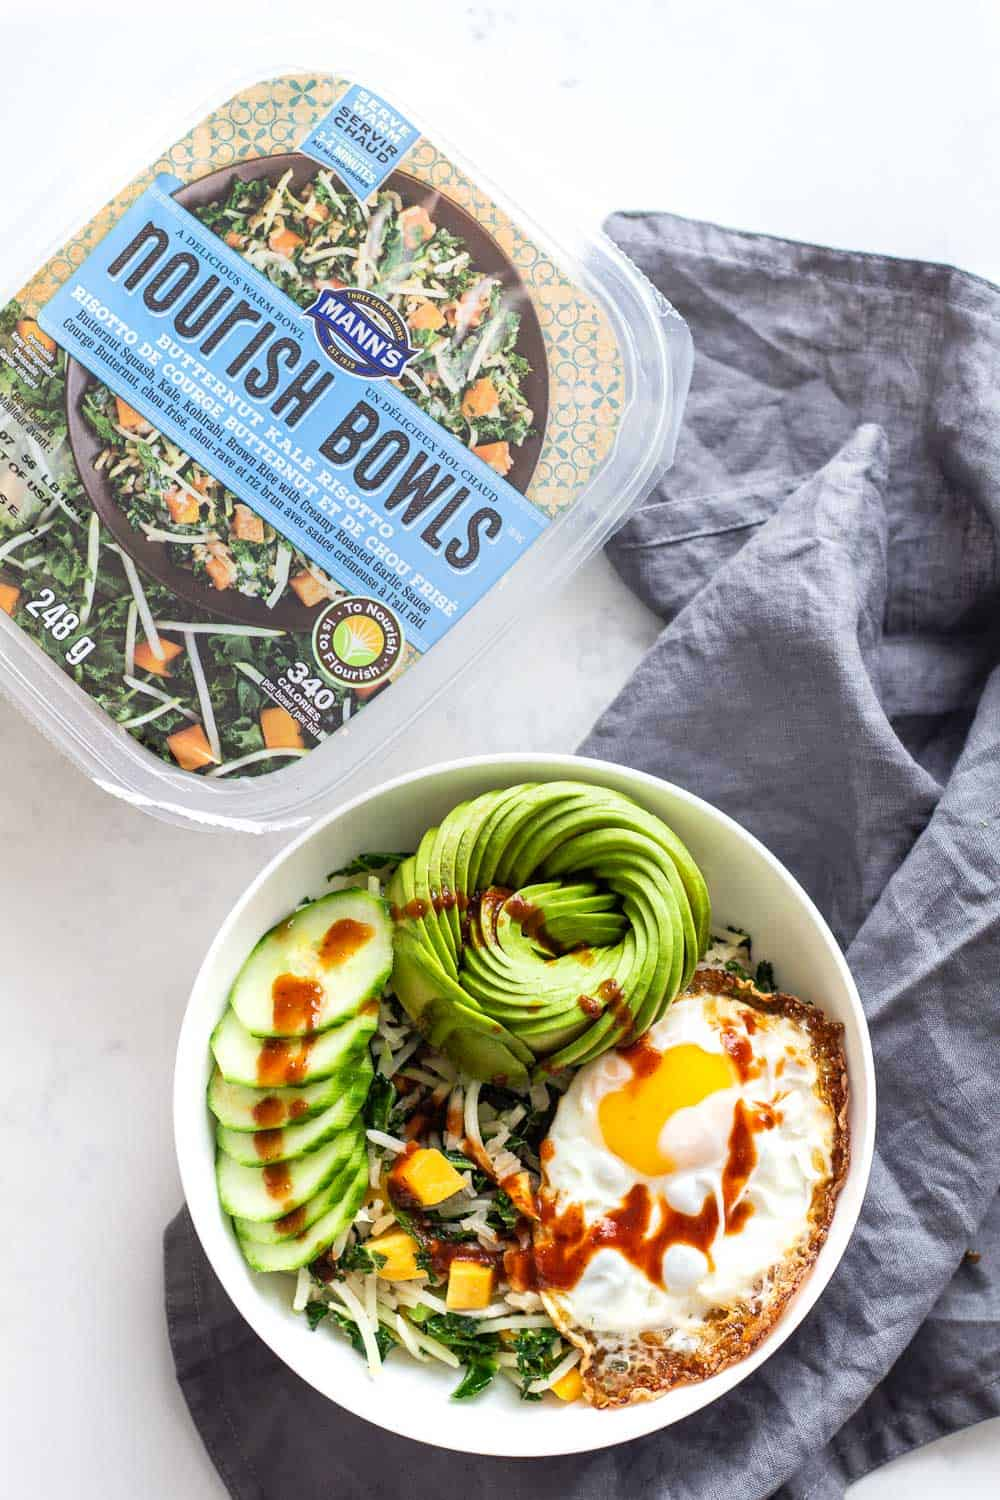 Breakfast Buddha Bowl with Sriracha Drizzle